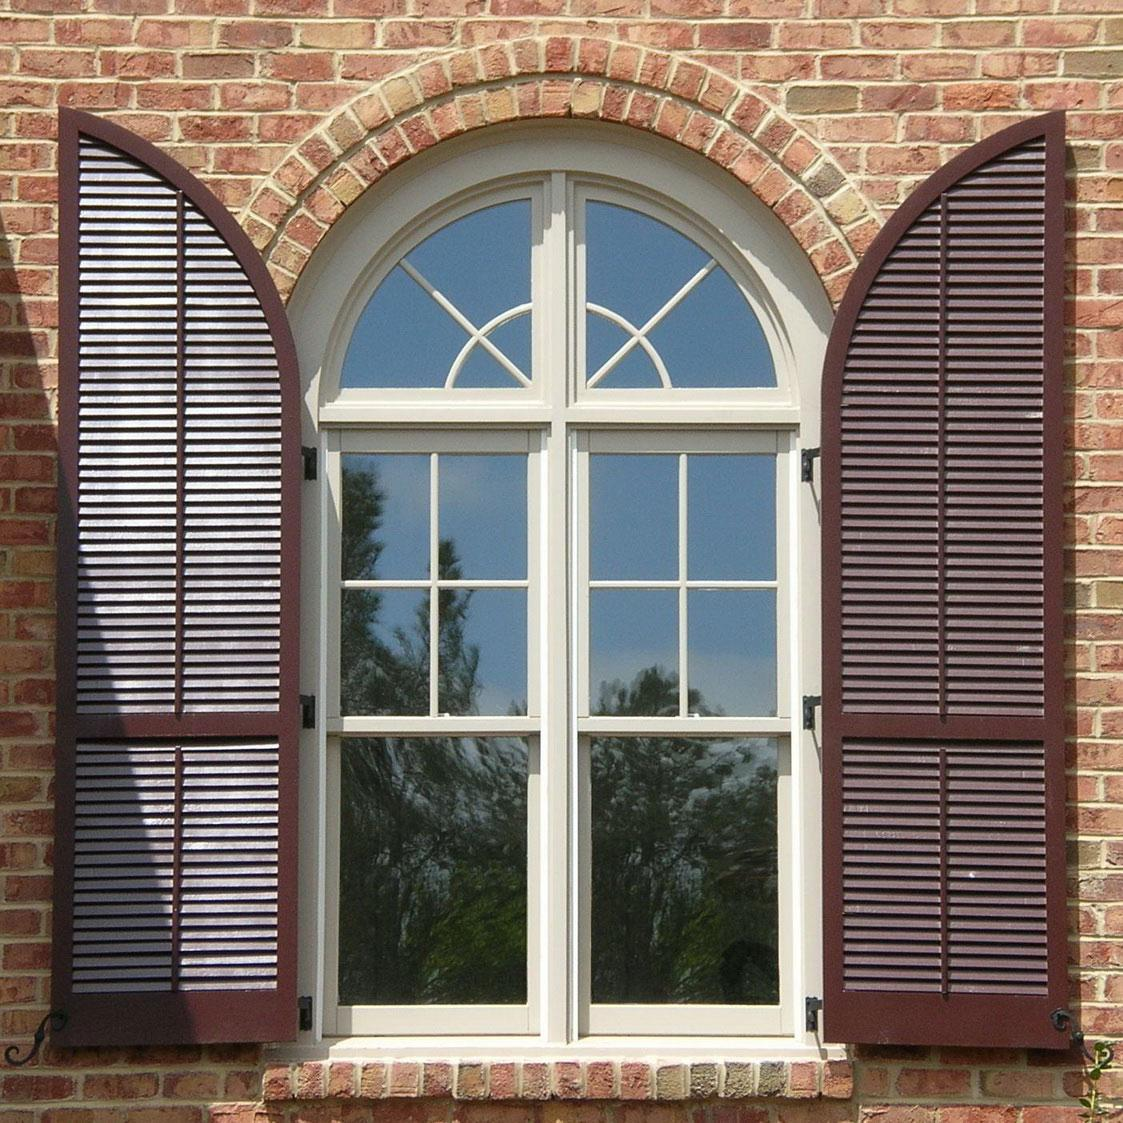 Stylish Window Shutters For Window Treatment Ideas Interior Exterior